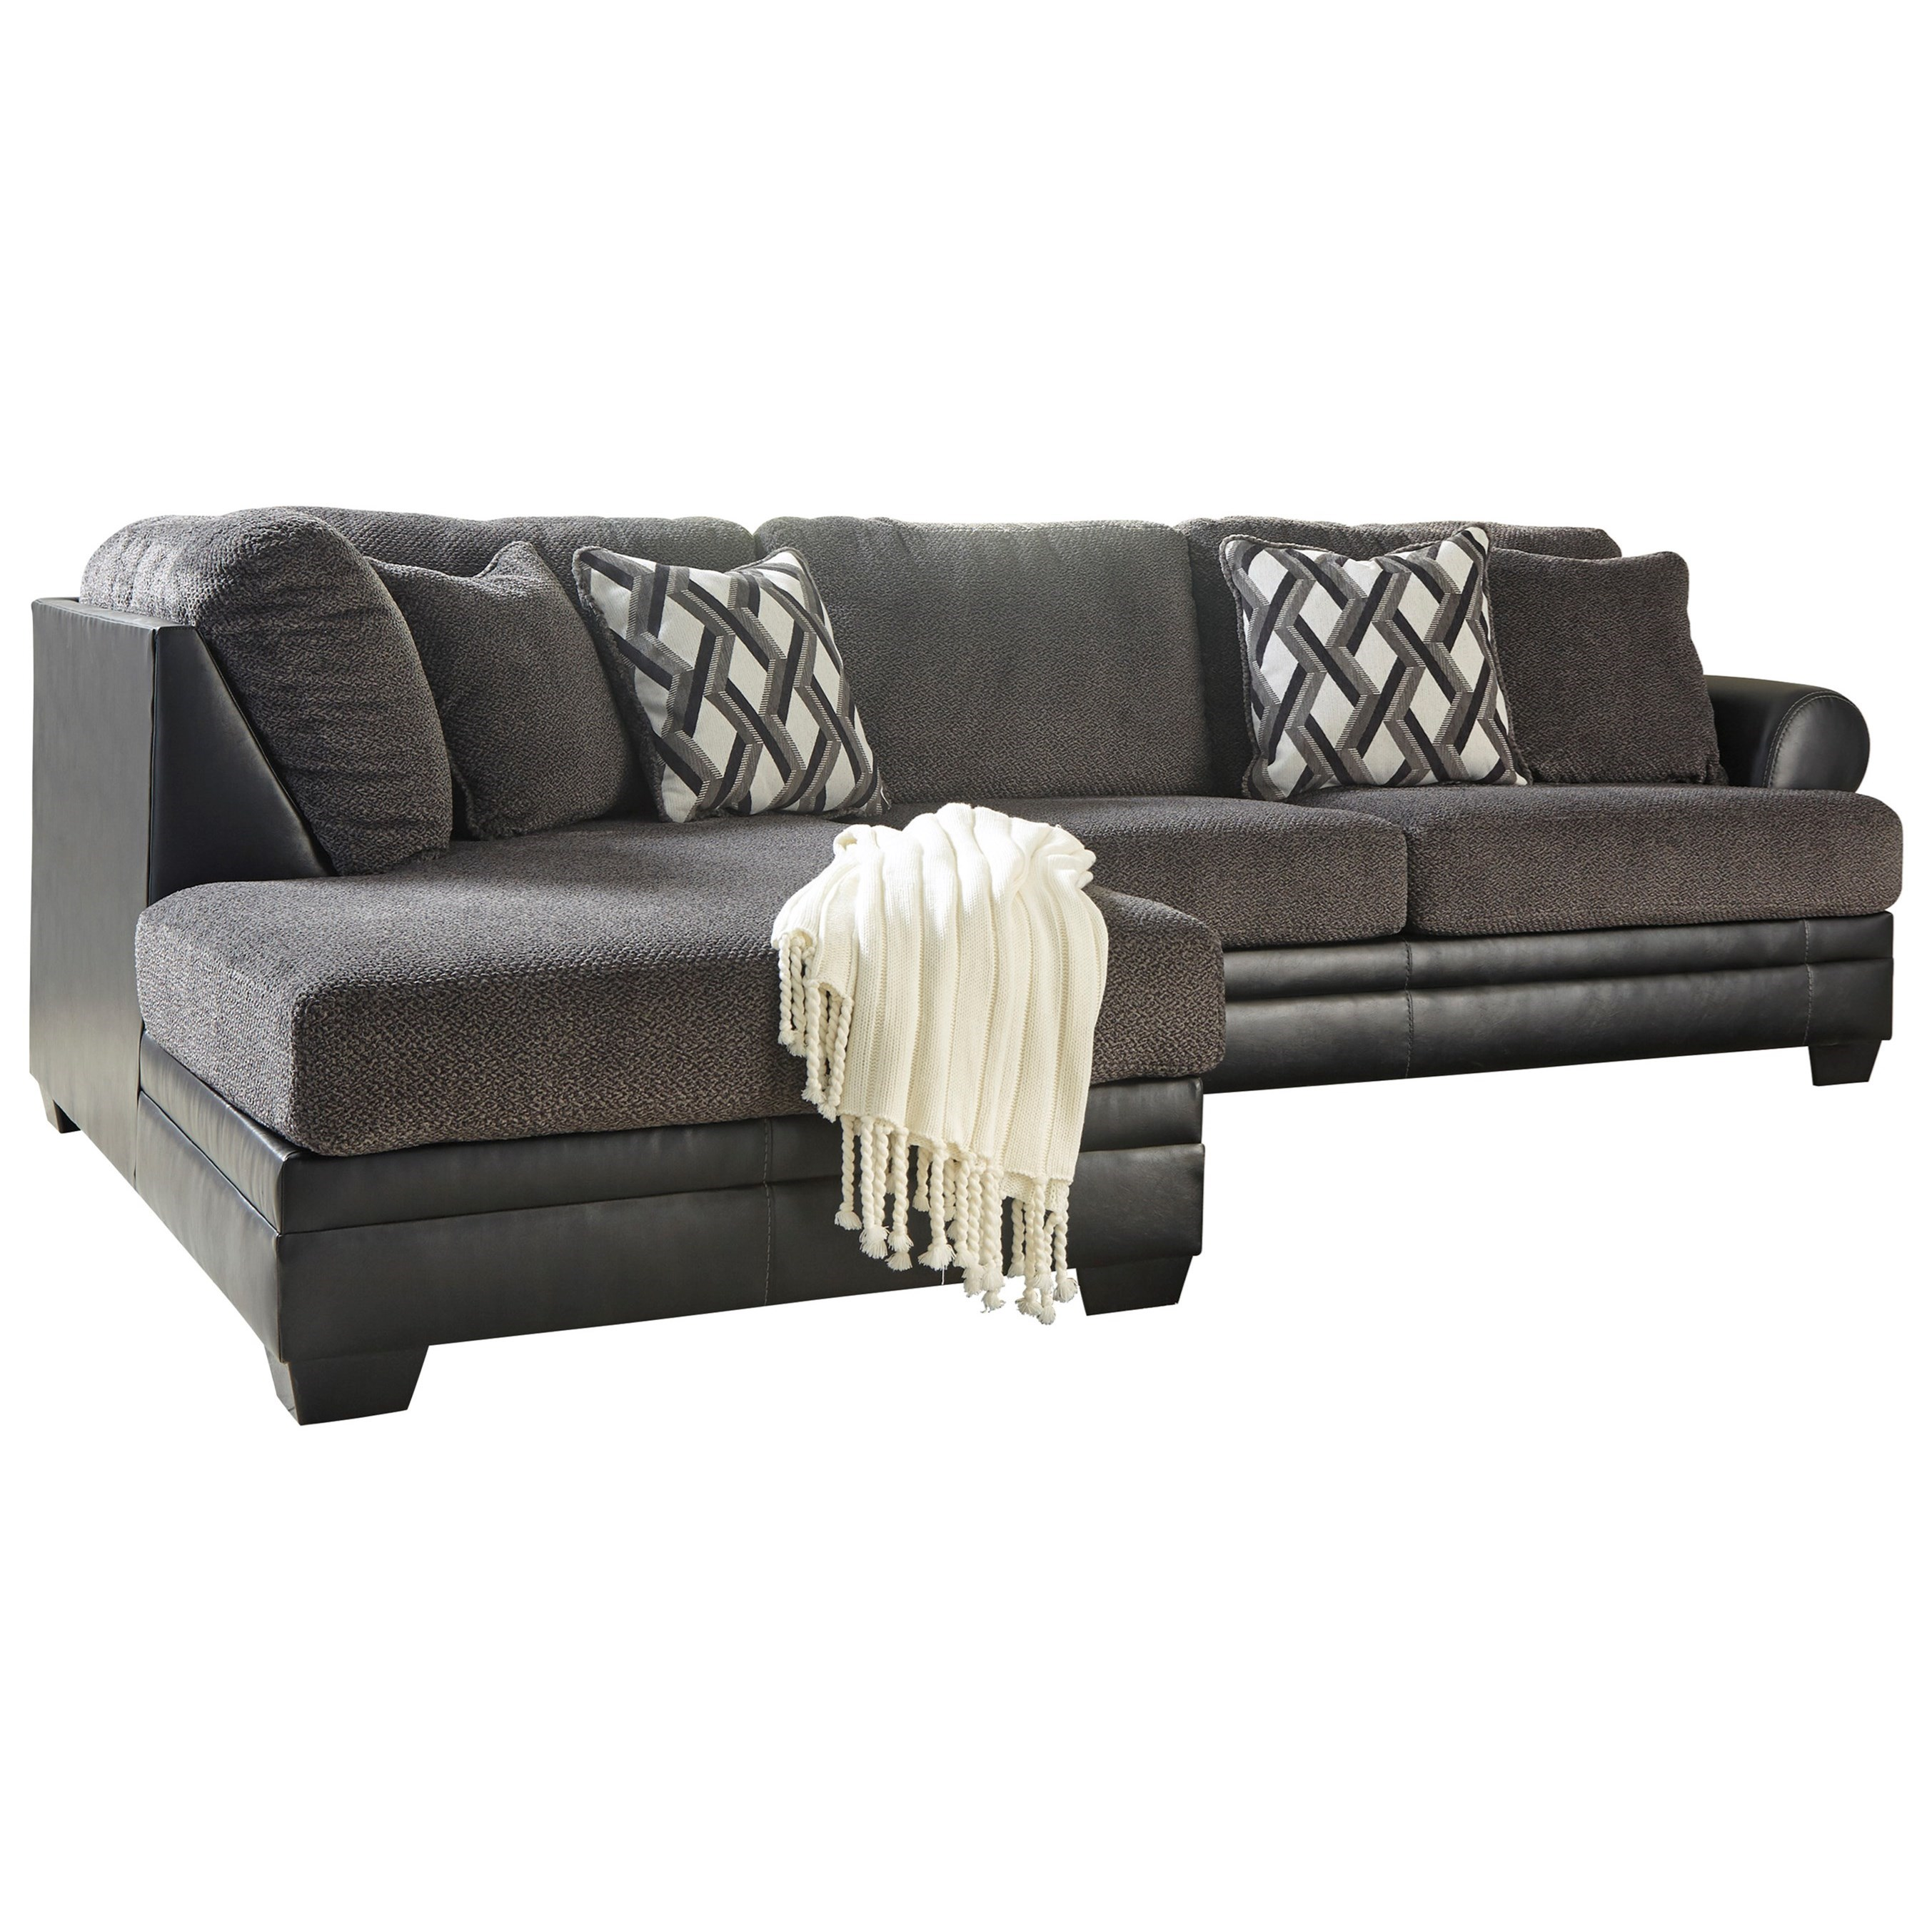 Kumasi 2-Piece Sectional with Chaise by Benchcraft at Furniture Barn